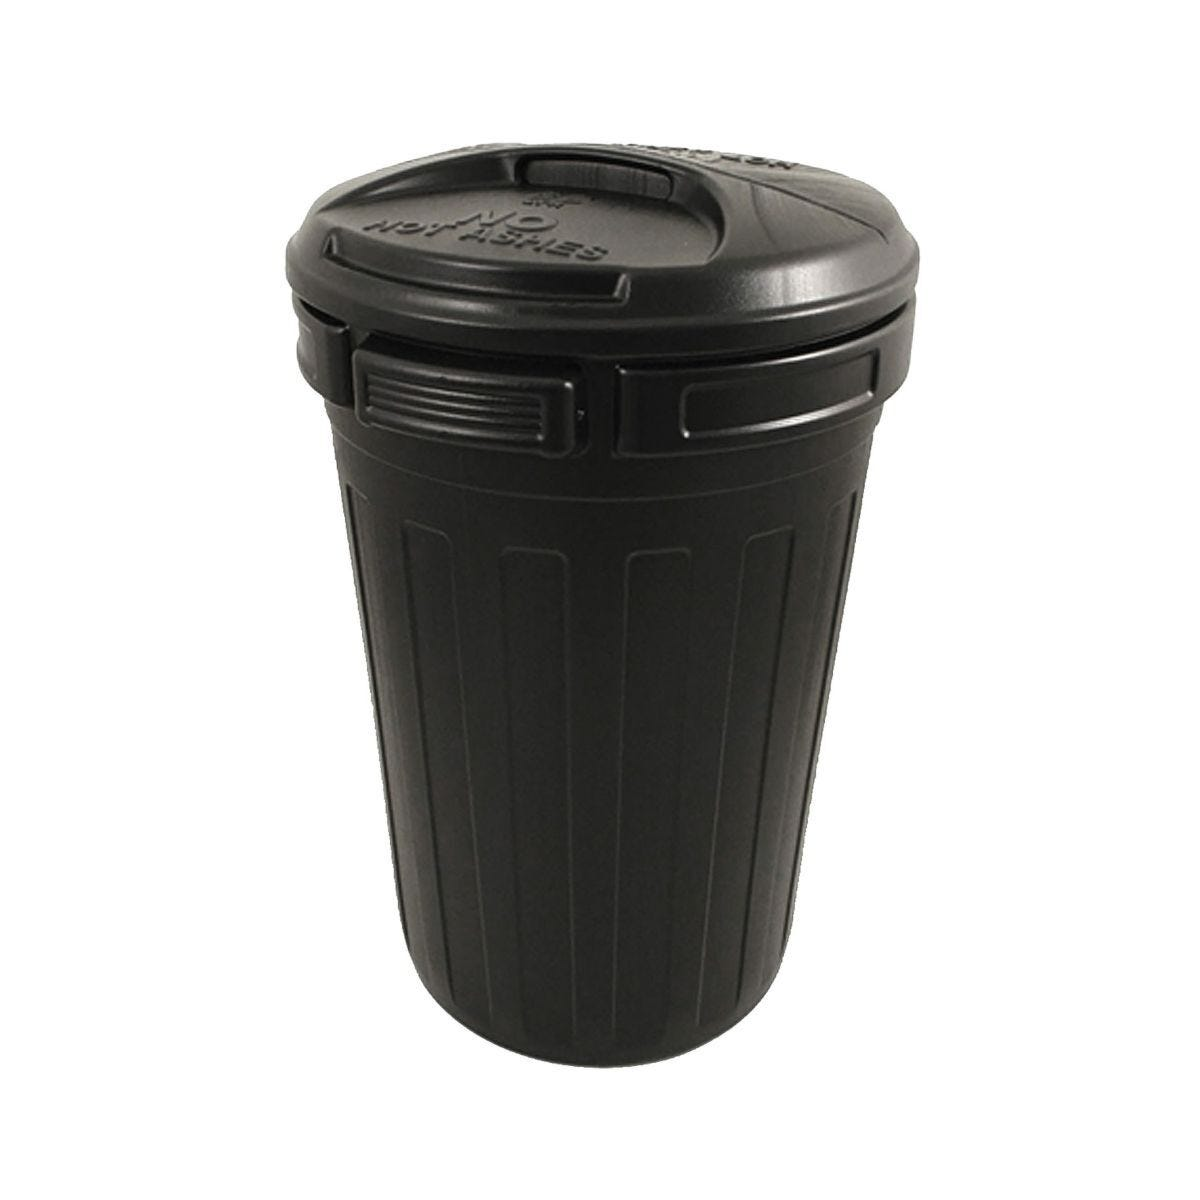 Charles Bentley Dustbin with Lid 80 Litre